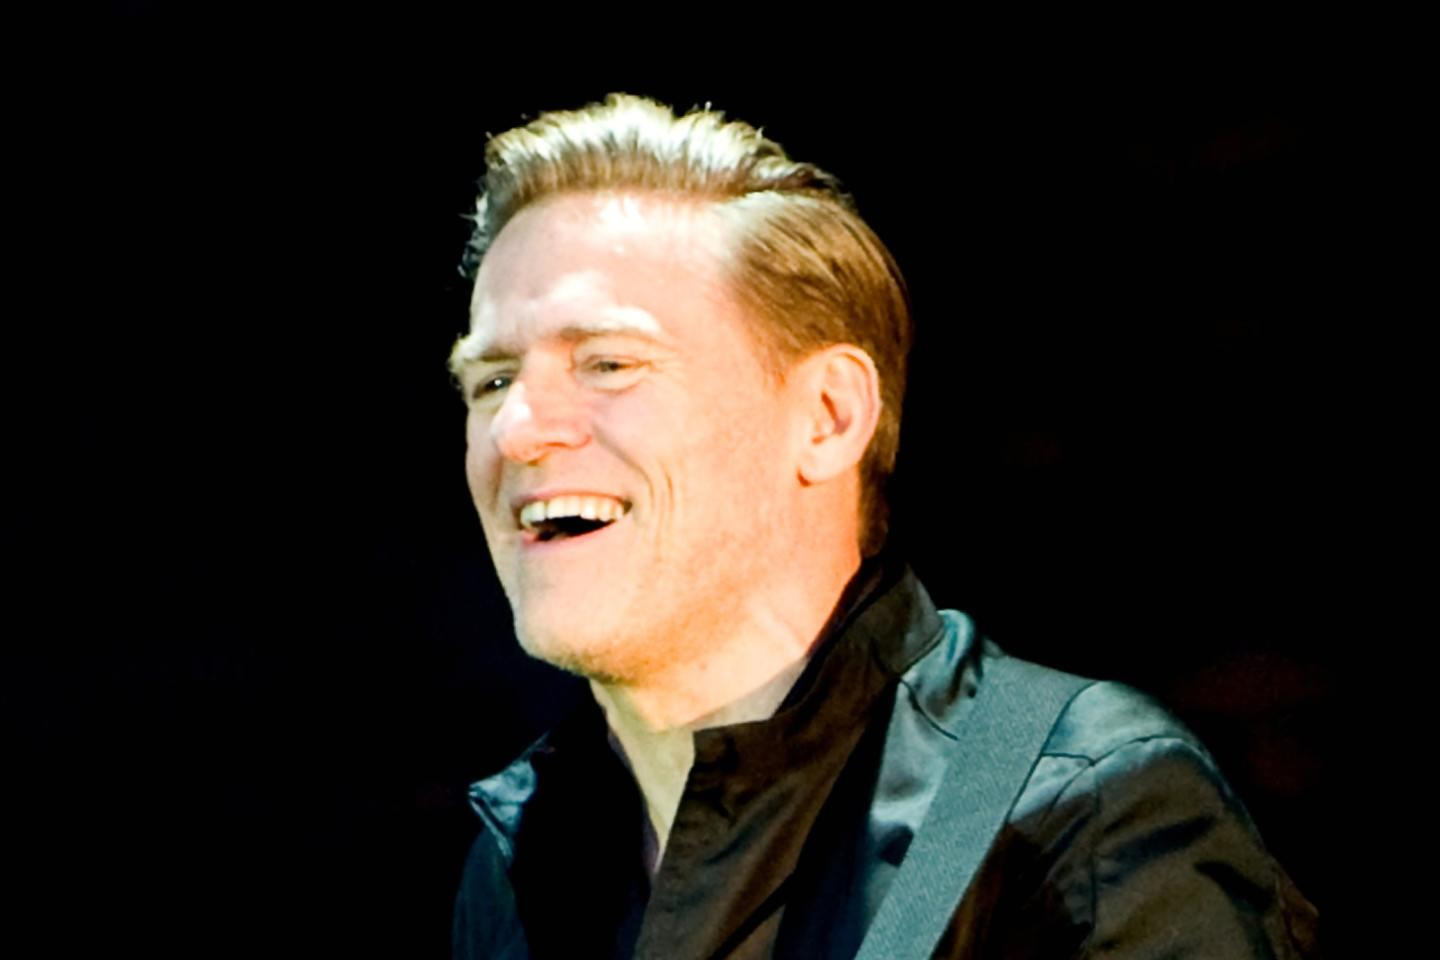 Bryan Adams Tickets | Bryan Adams Tour 2020 and Concert Tickets